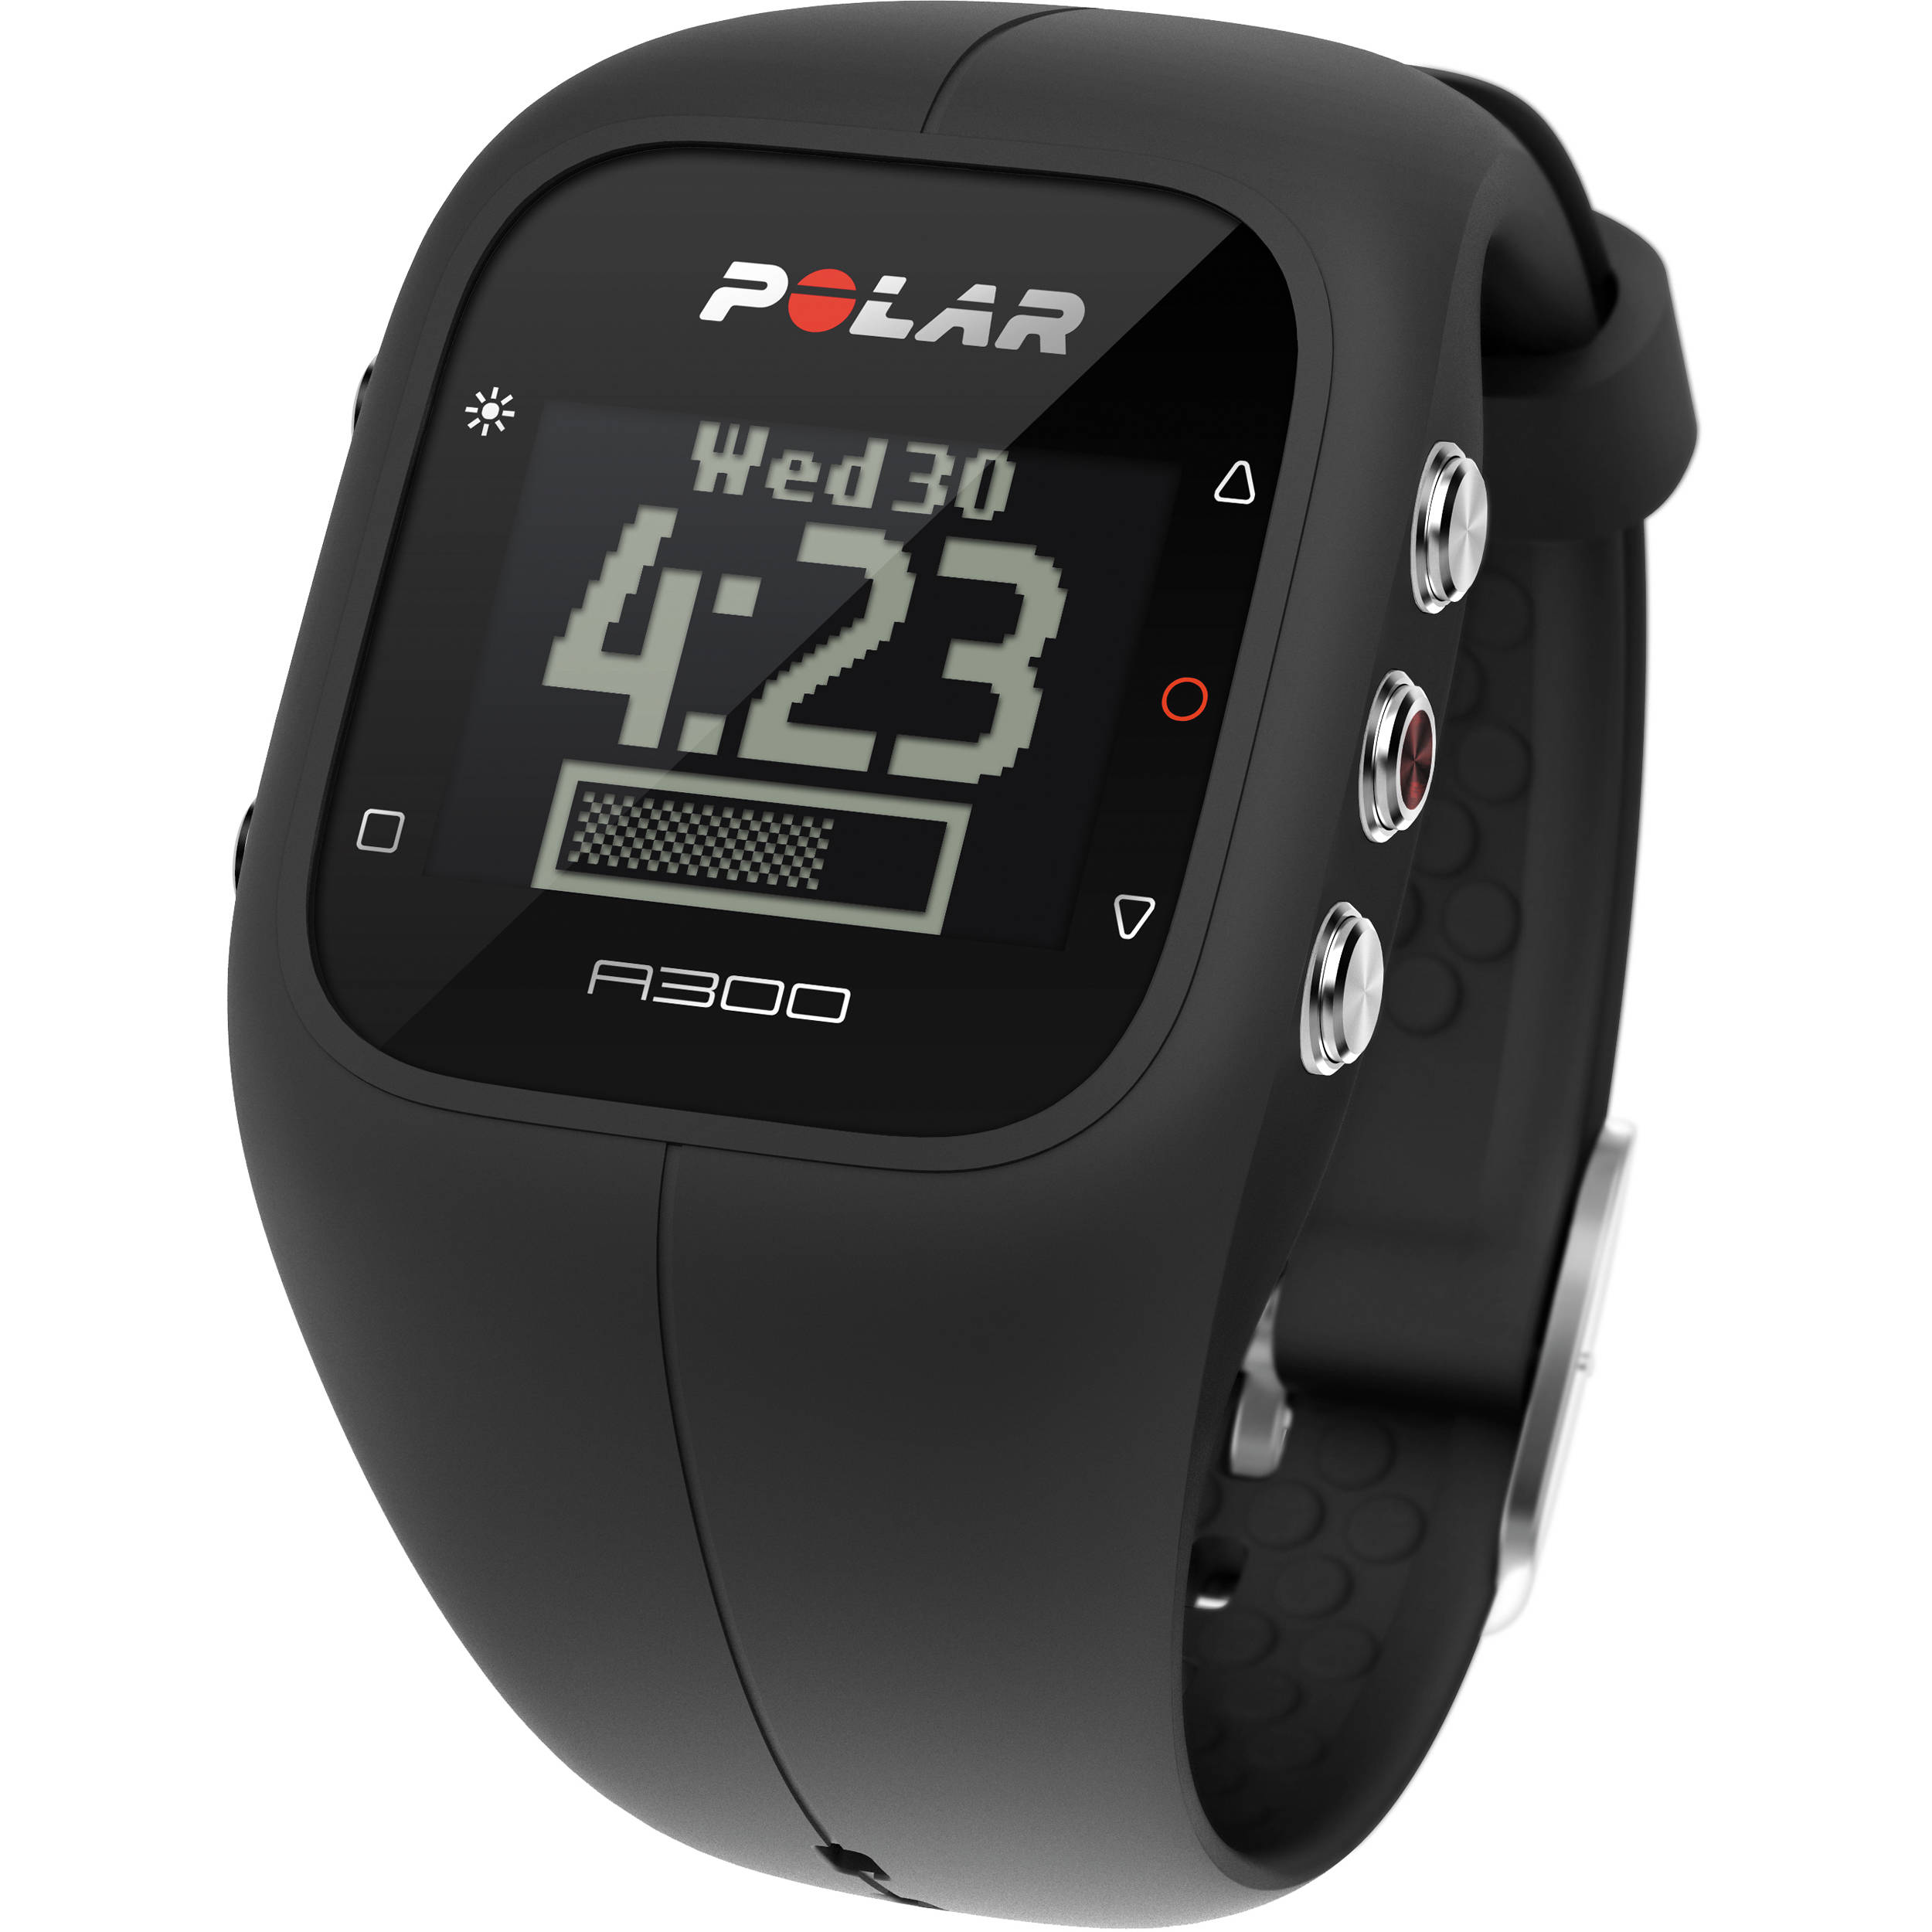 Polar A300 Fitness Activity Monitor Tracker Running Gym Training Sports Watch